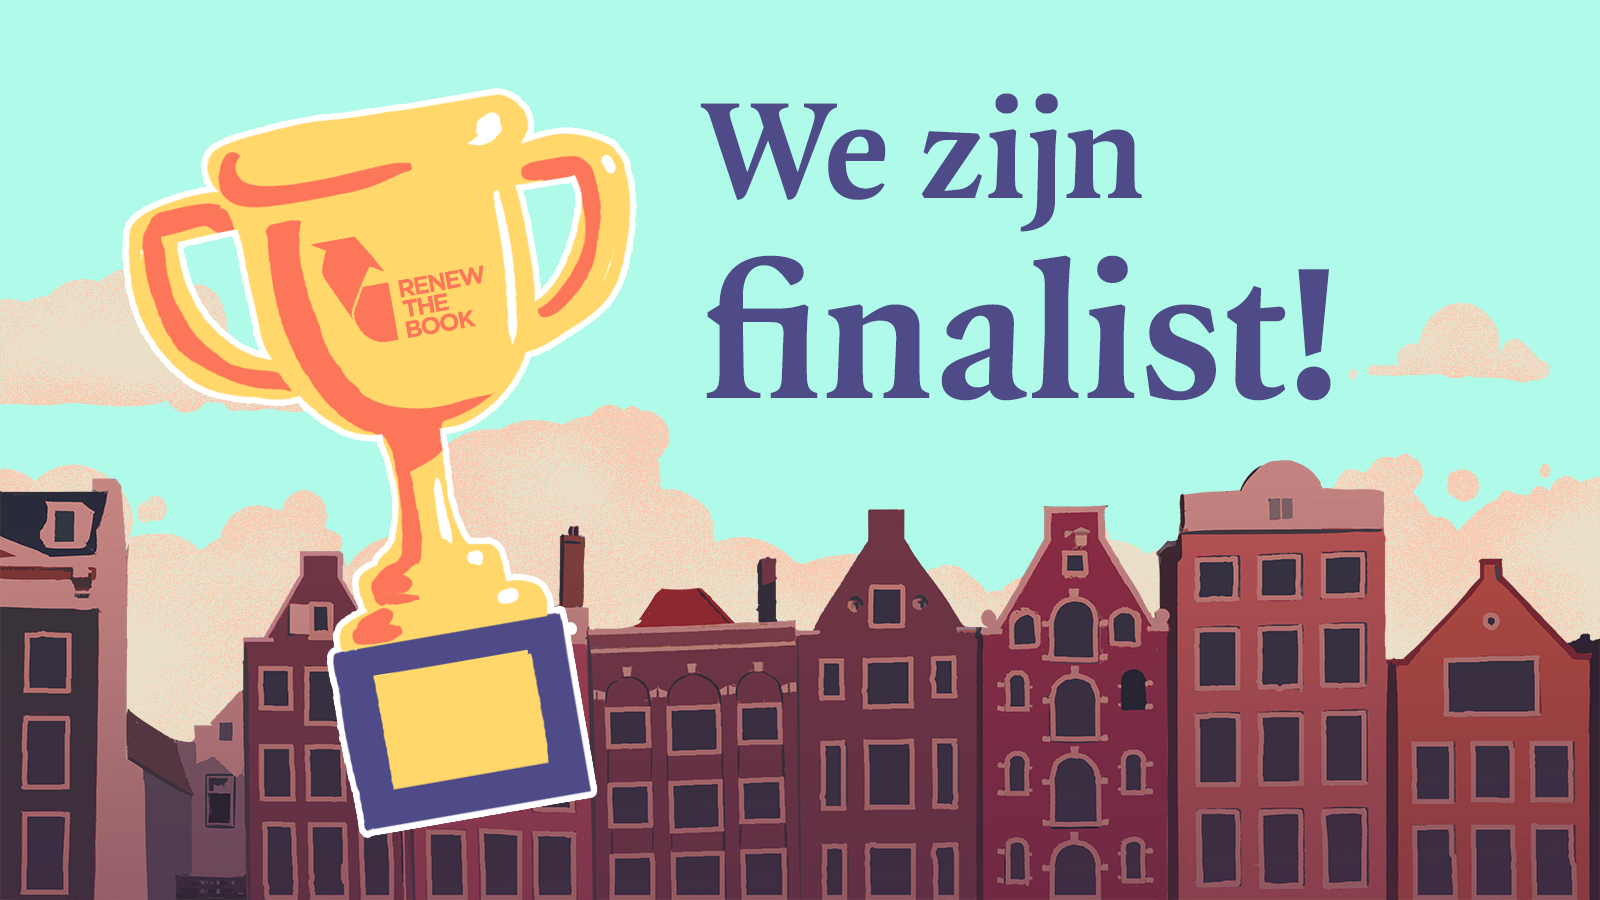 Immer is finalist bij de Renew the Book Innovation Award